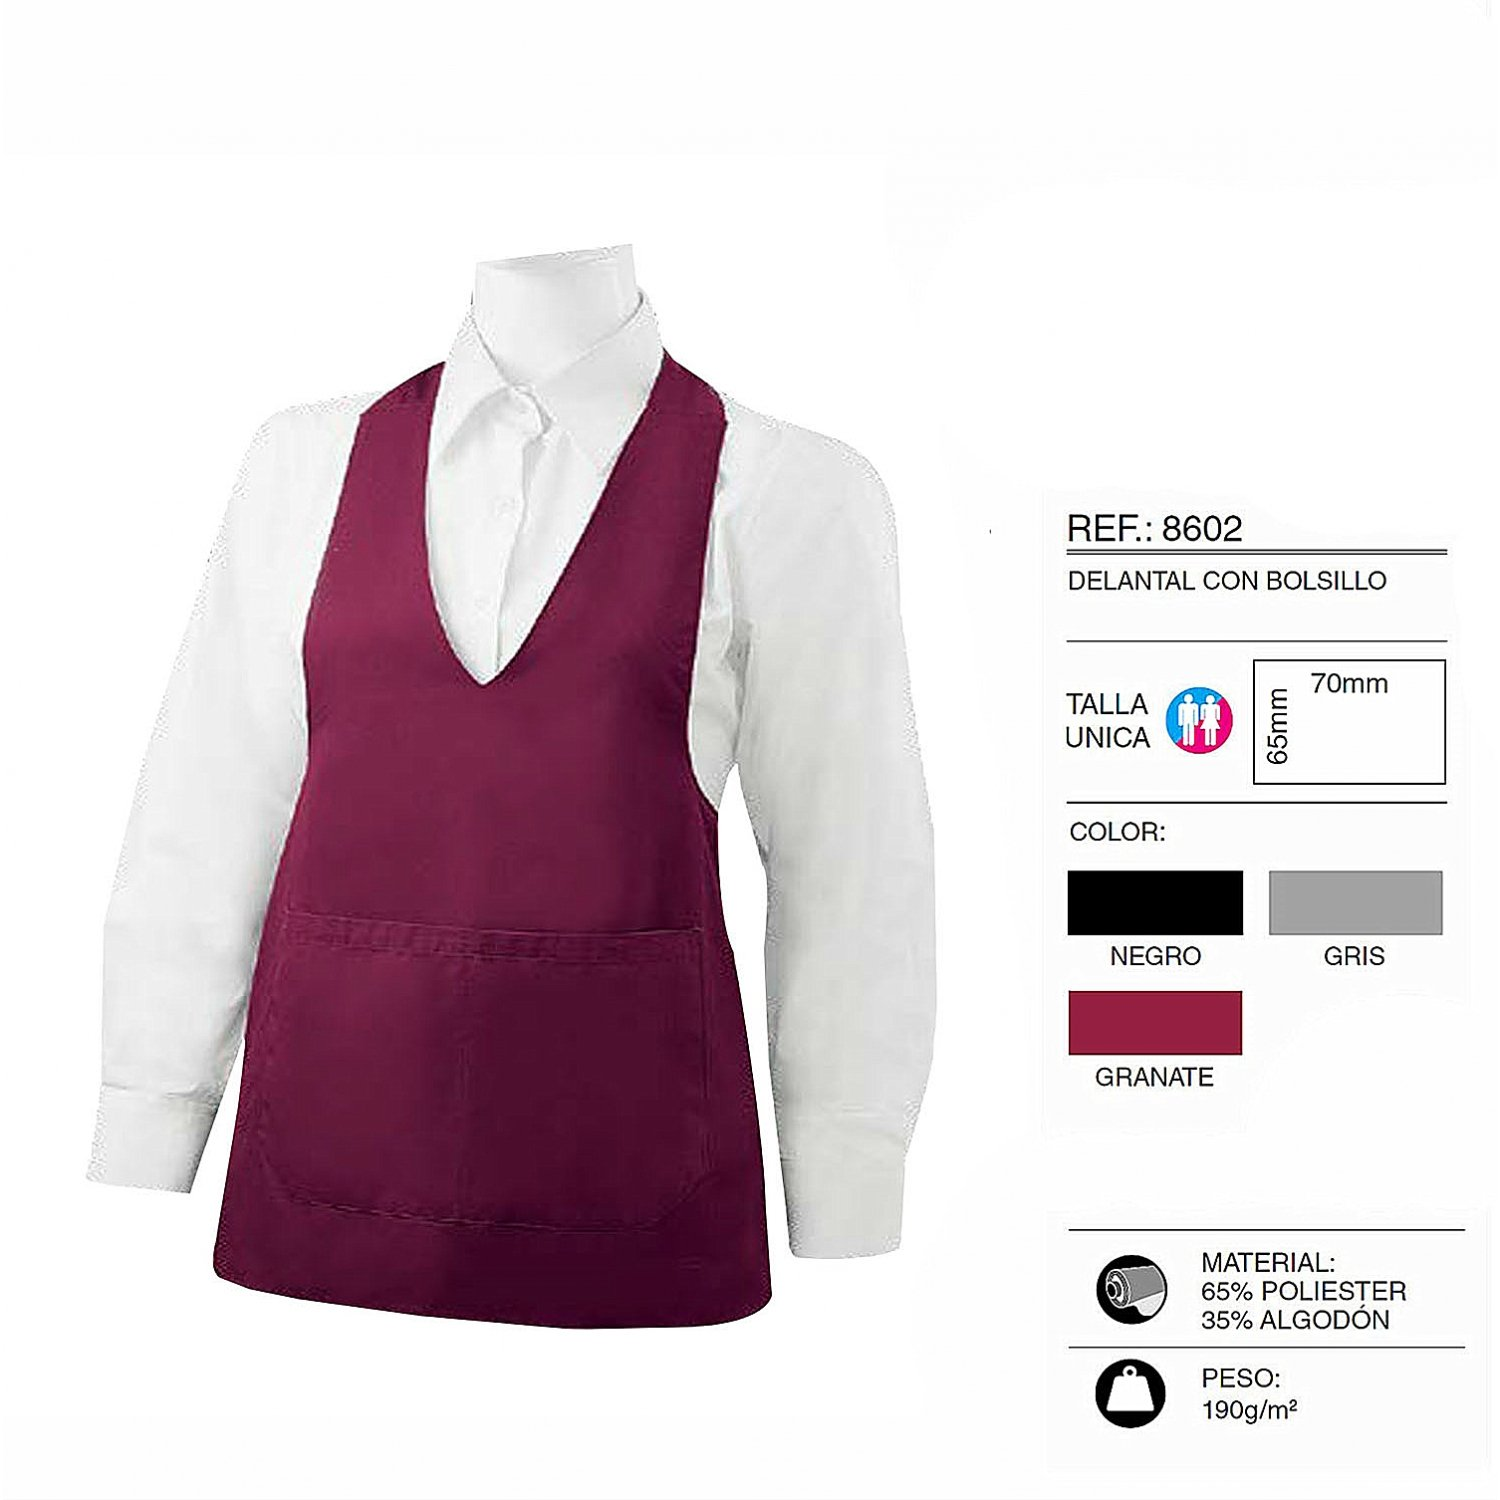 70/mm Uniform Work Clinica Hospital Cleaning Veterinary Health Hospitality/ 8602 burgundy MISEMIYA Cleaning Apron with Pocket 65/mm /ref